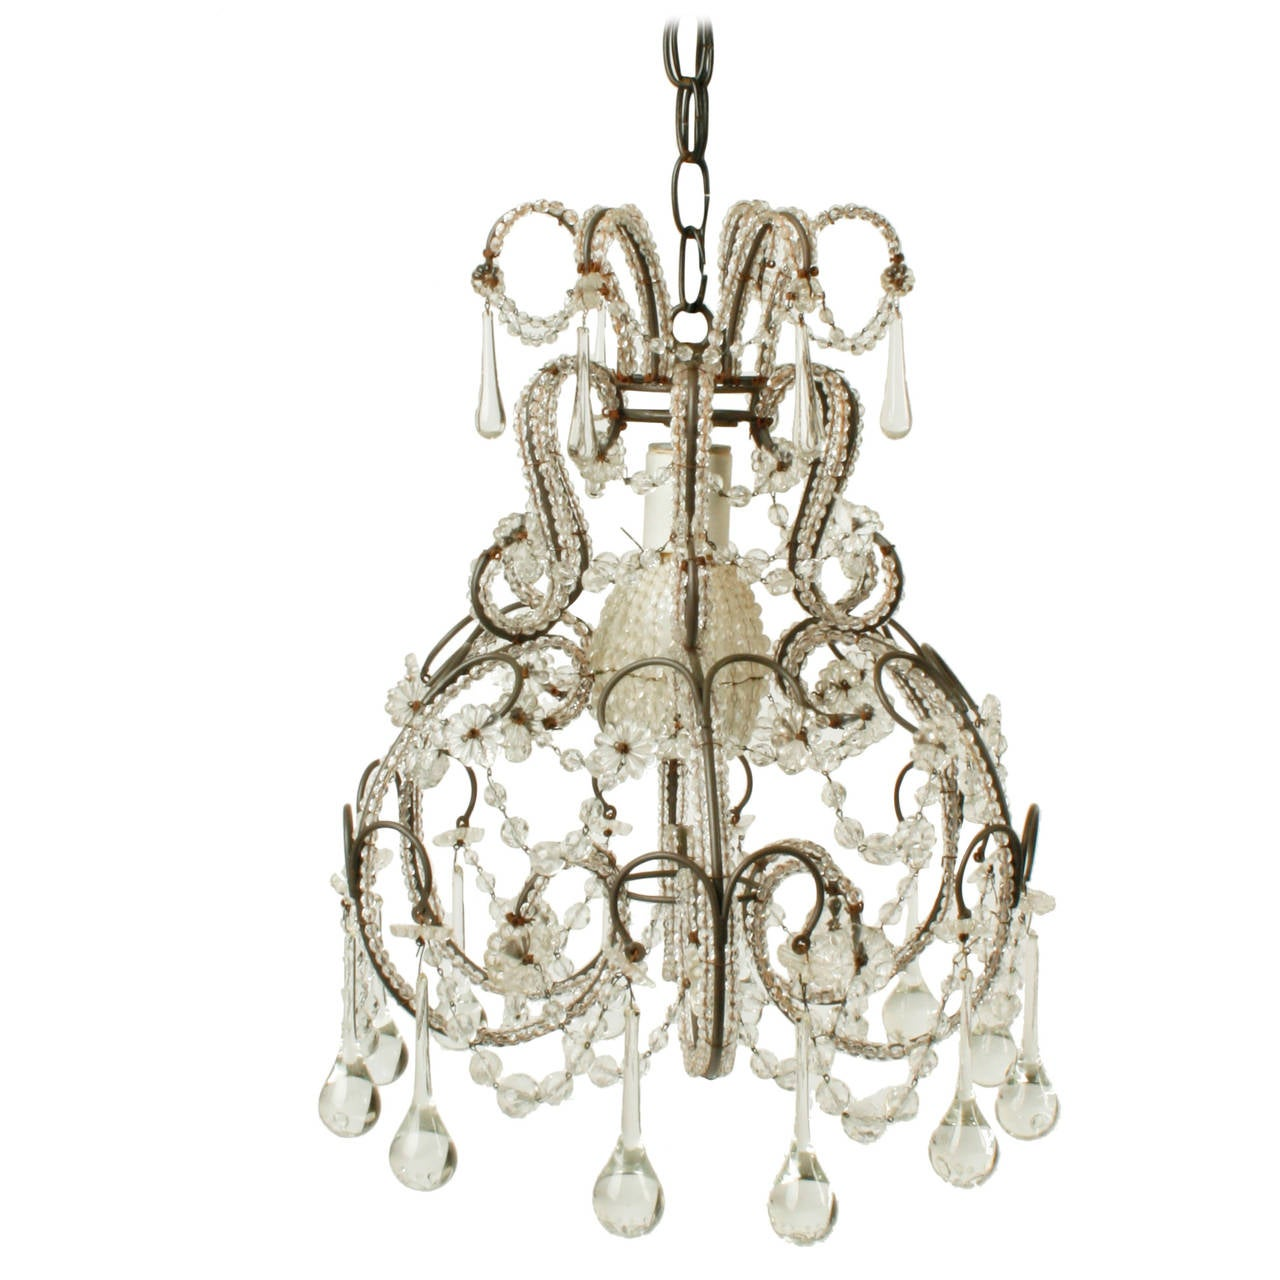 Small French Crystal Chandelier, circa 1920